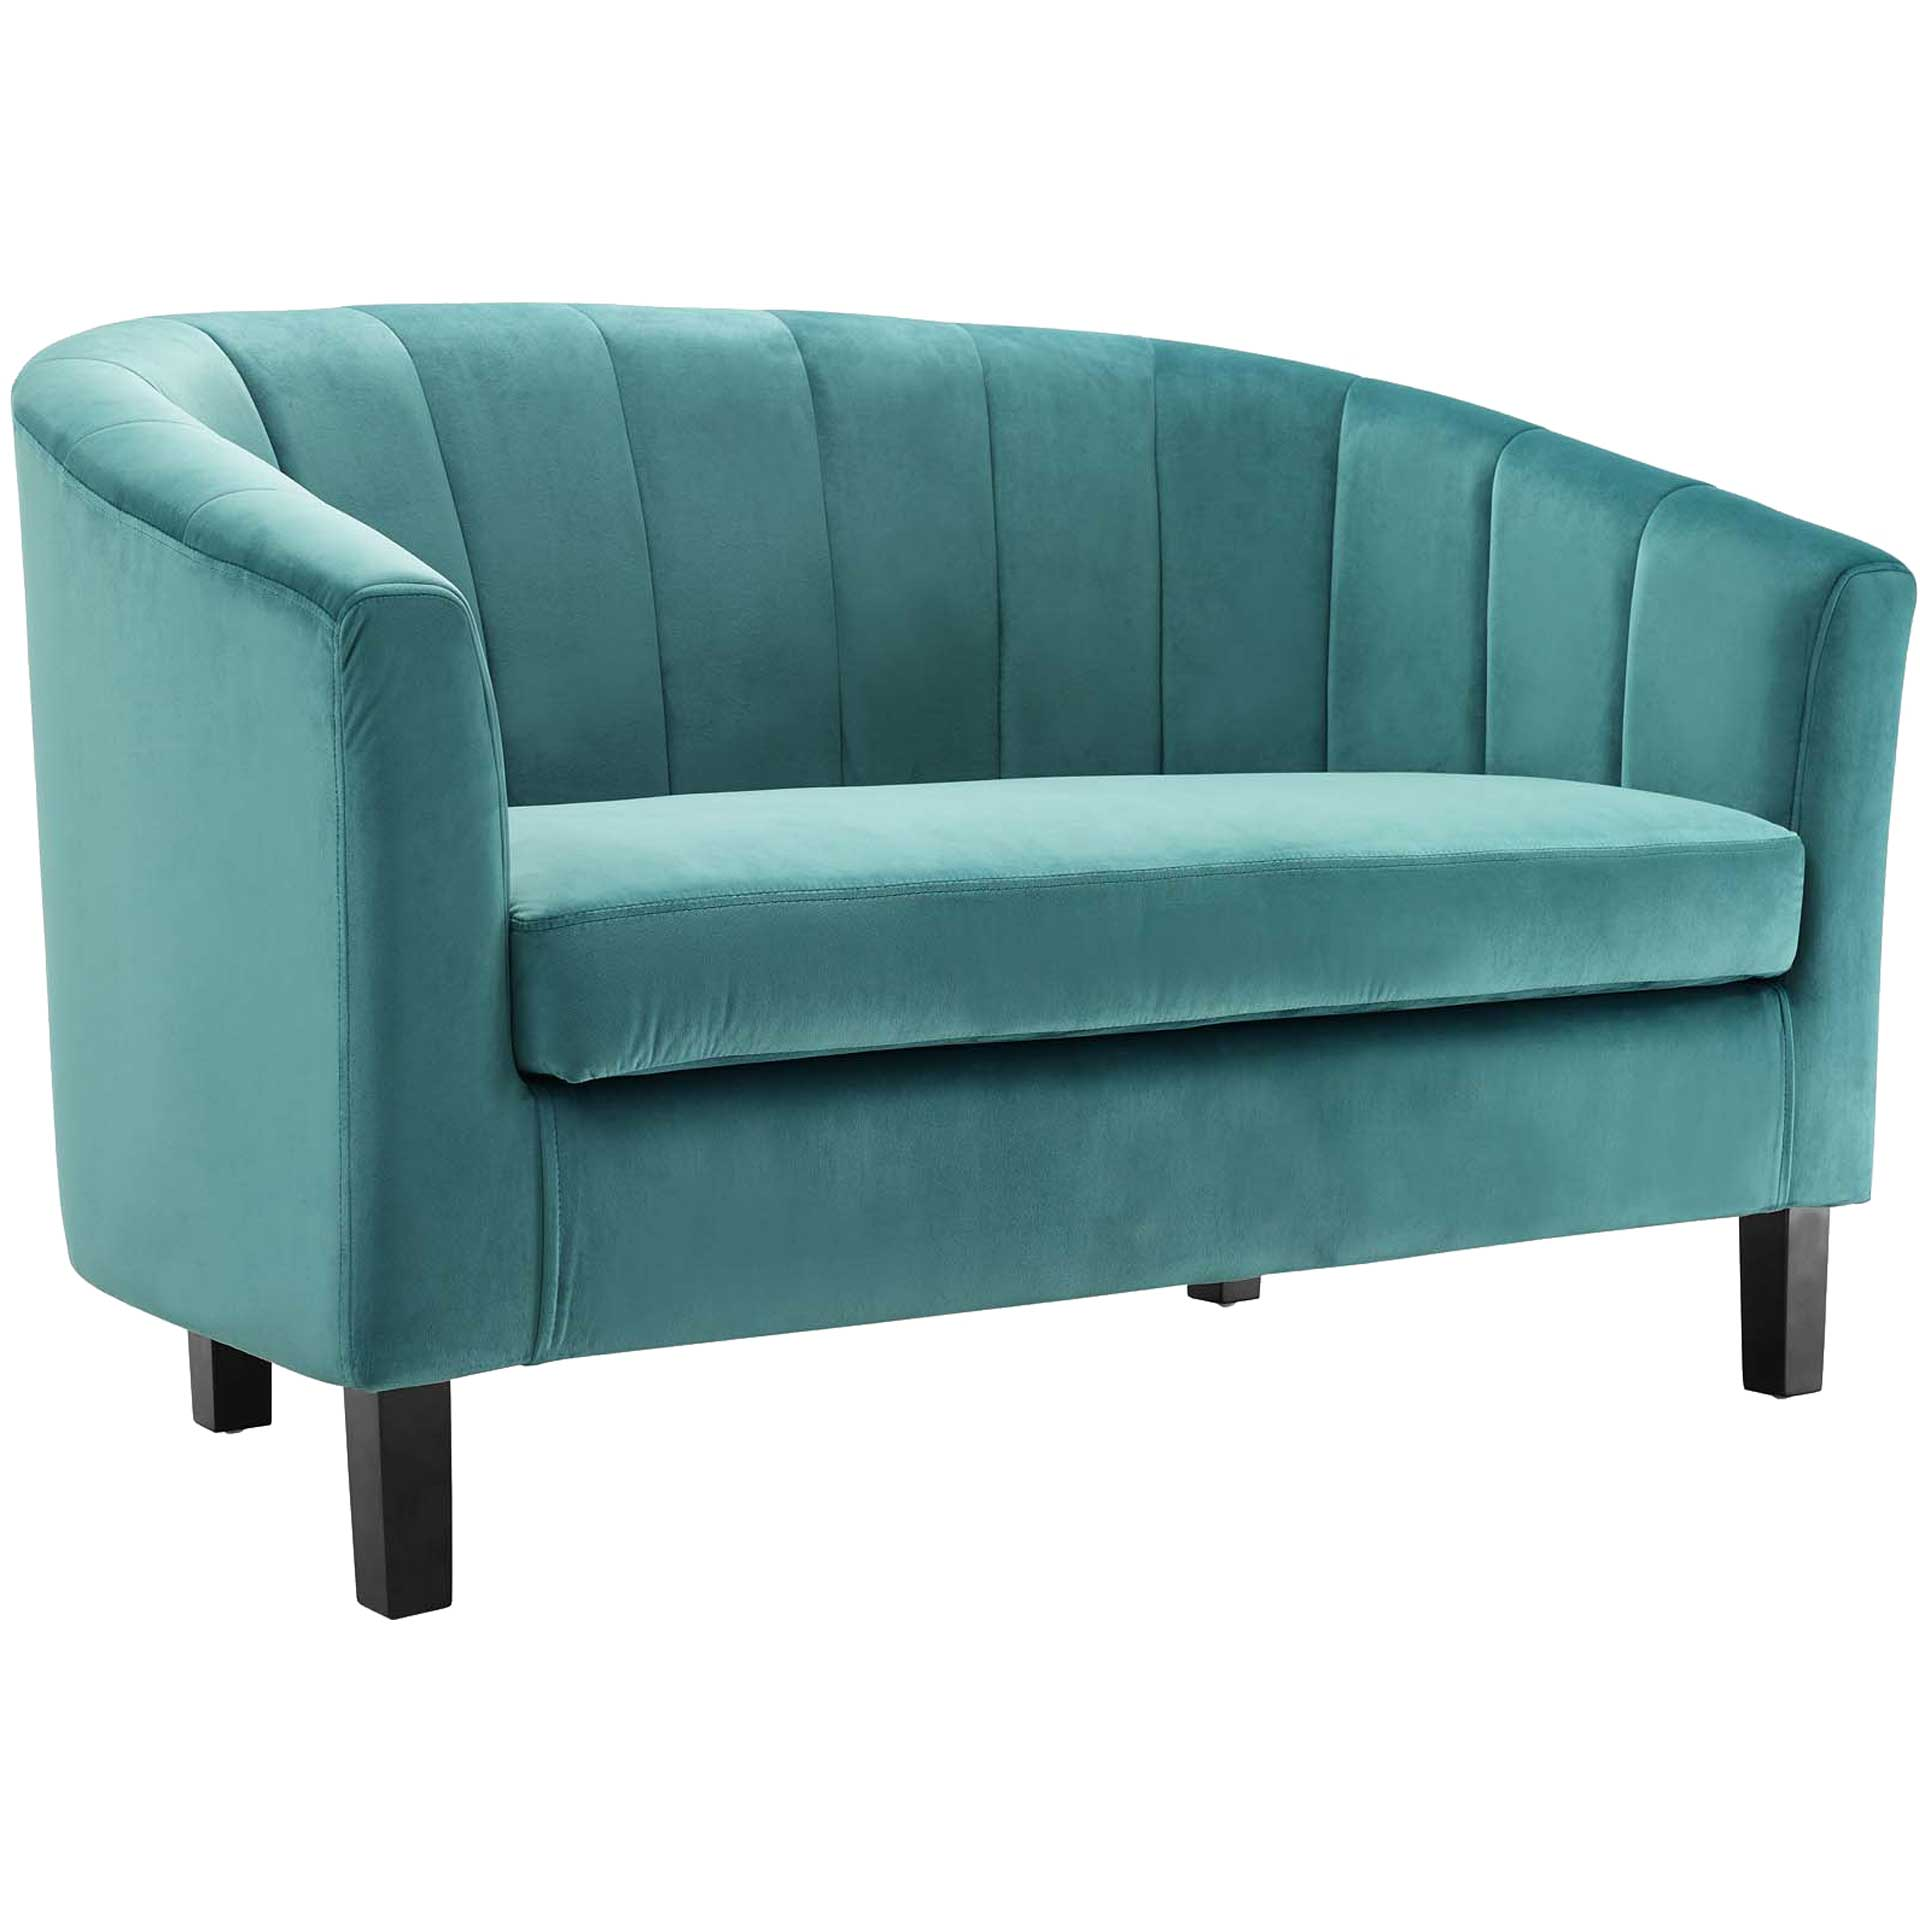 Paloma Channel Tufted Velvet Sofa Teal